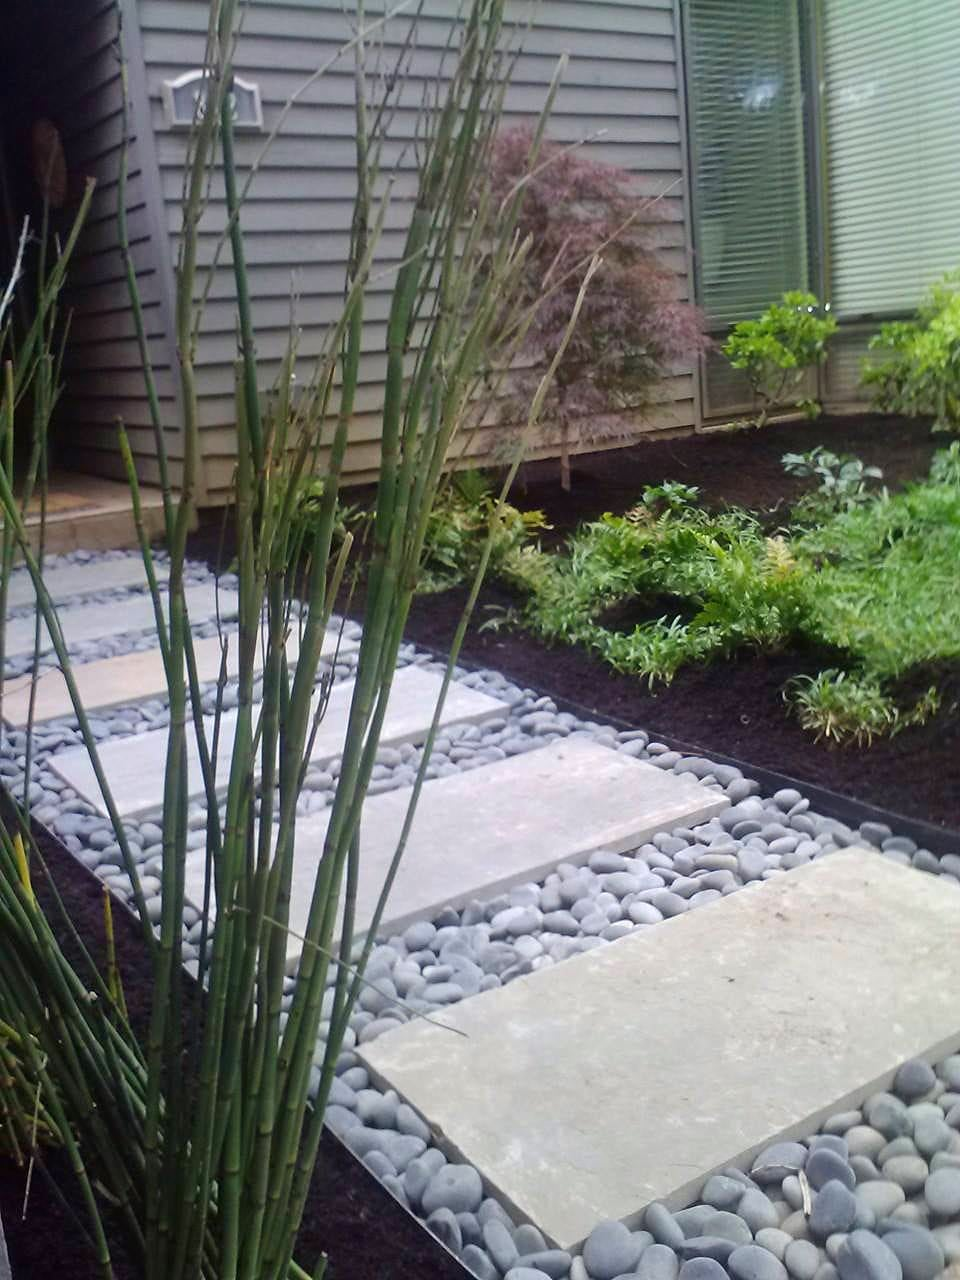 vowell - horse tail and concrete pavers.jpg